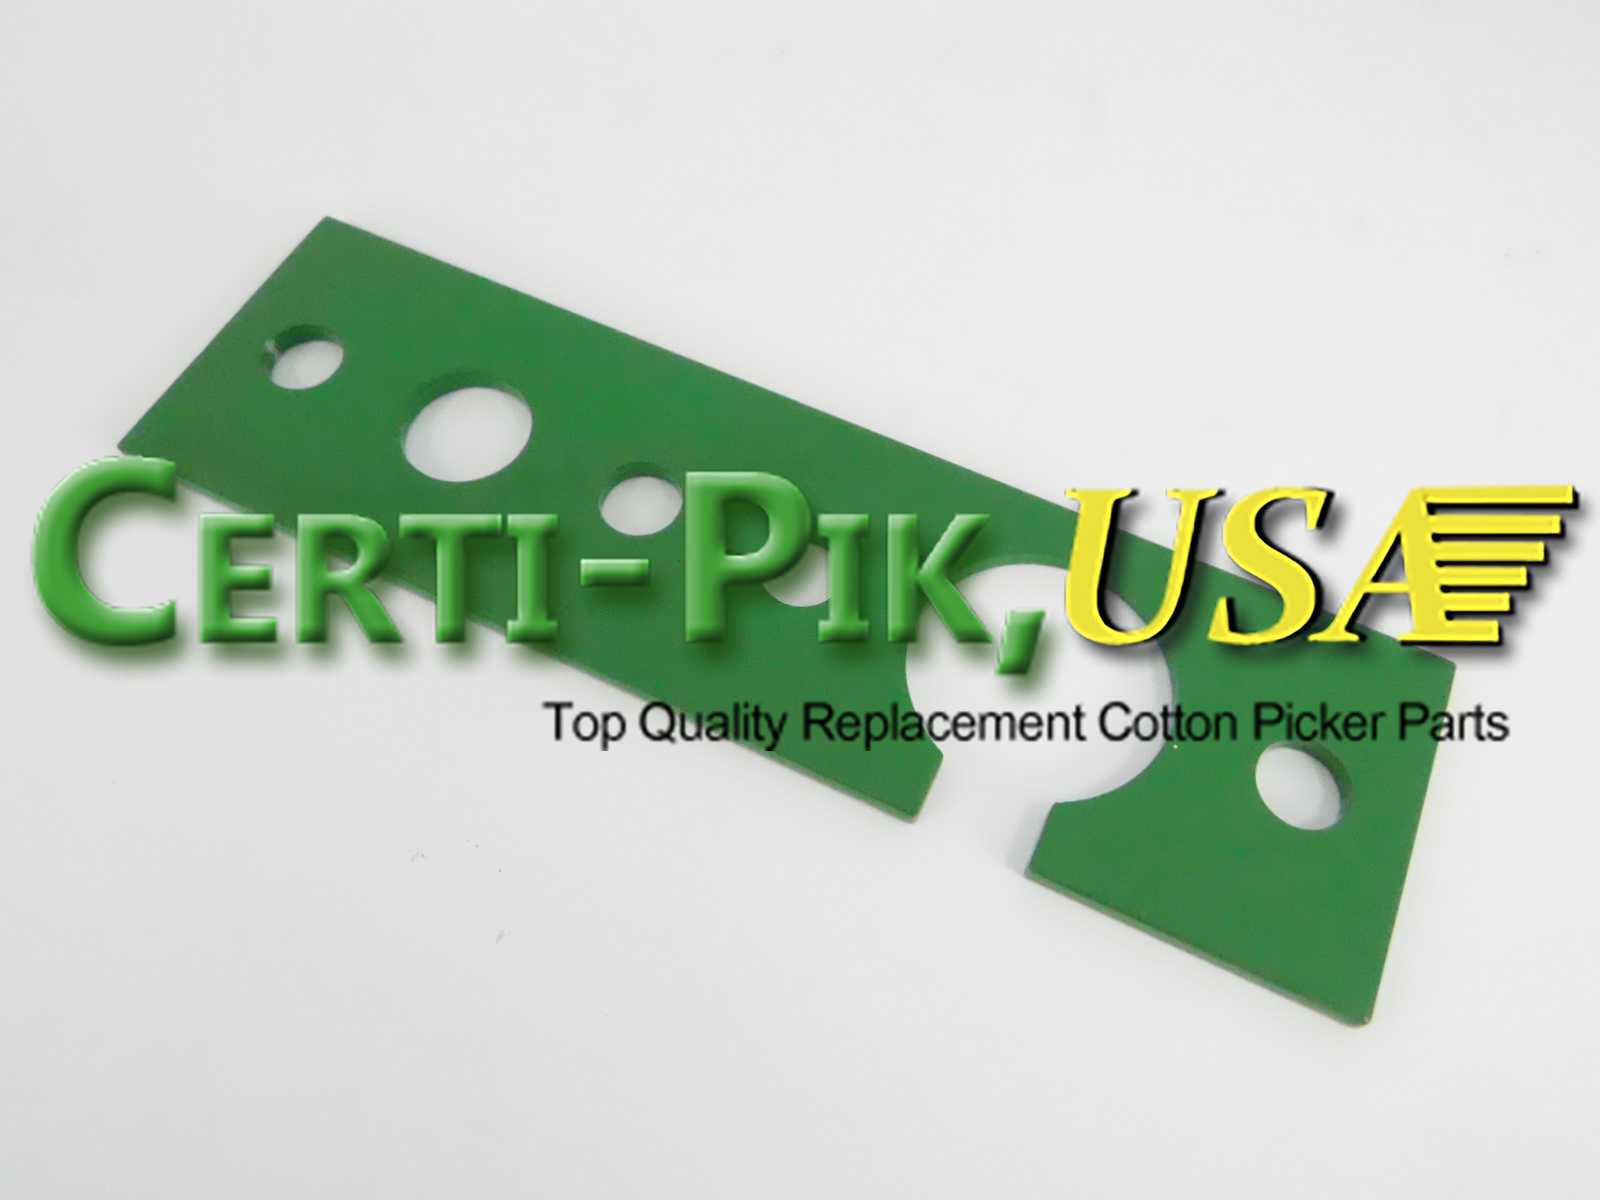 Picking Unit Cabinet: John Deere 9976-CP690 Upper Cabinet N372157 (72157) for Sale